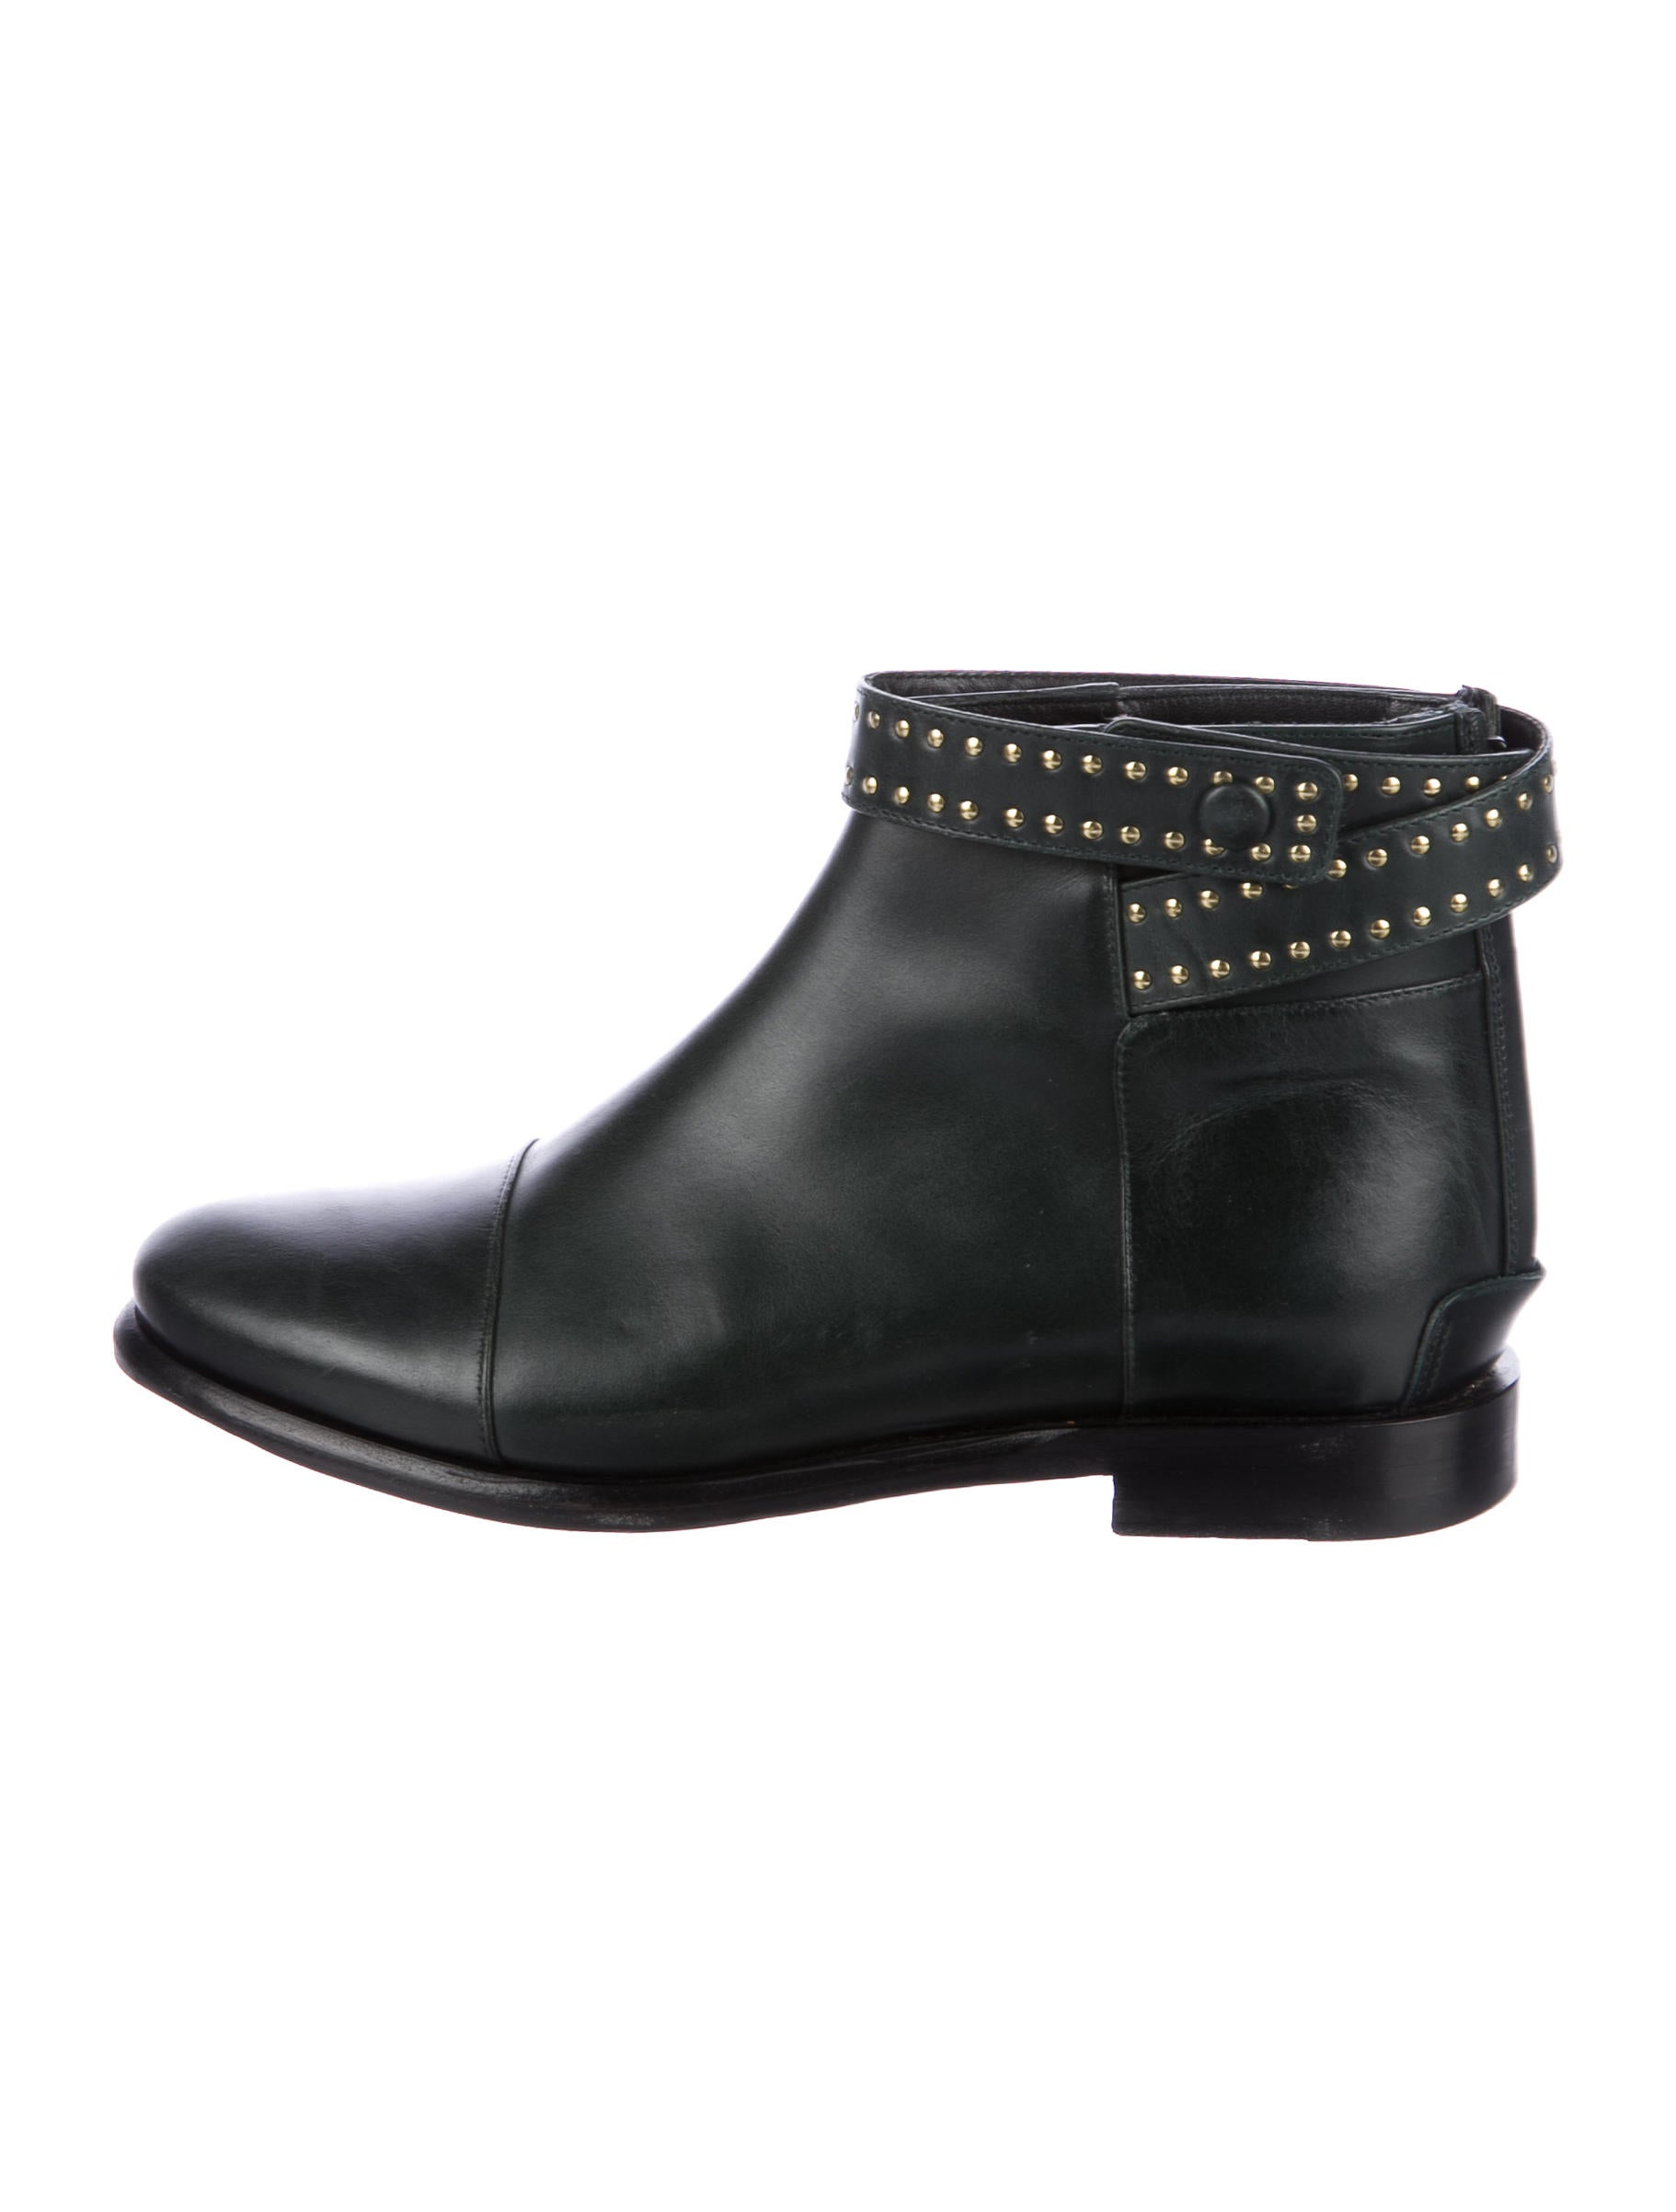 outlet eastbay Balenciaga Leather Studded Booties exclusive Zpg6Cxu46Z